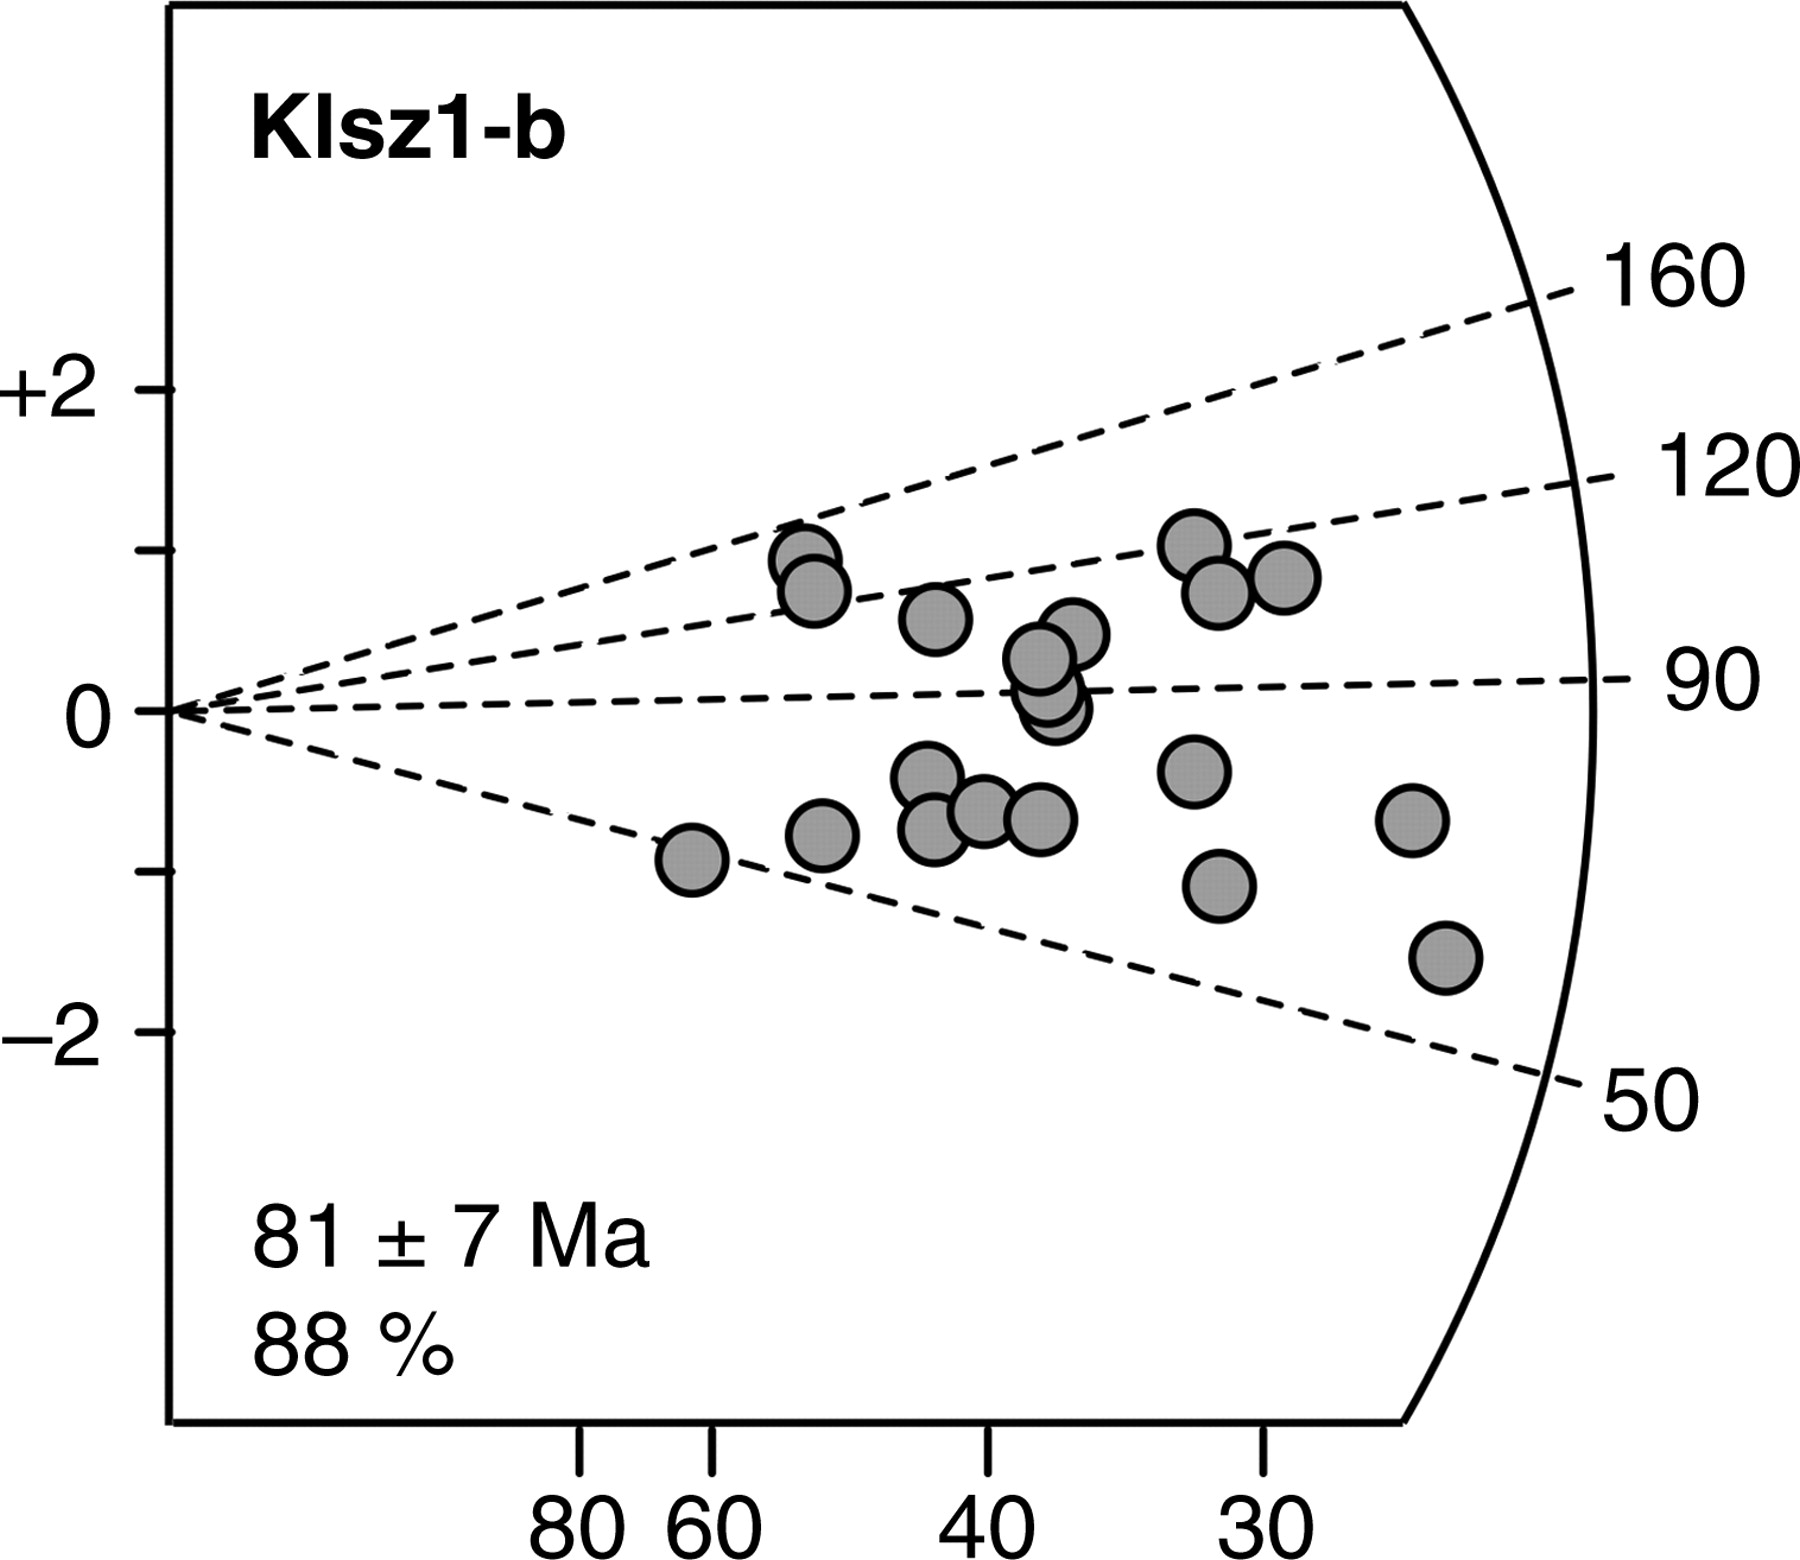 Fission track dating method used to estimate